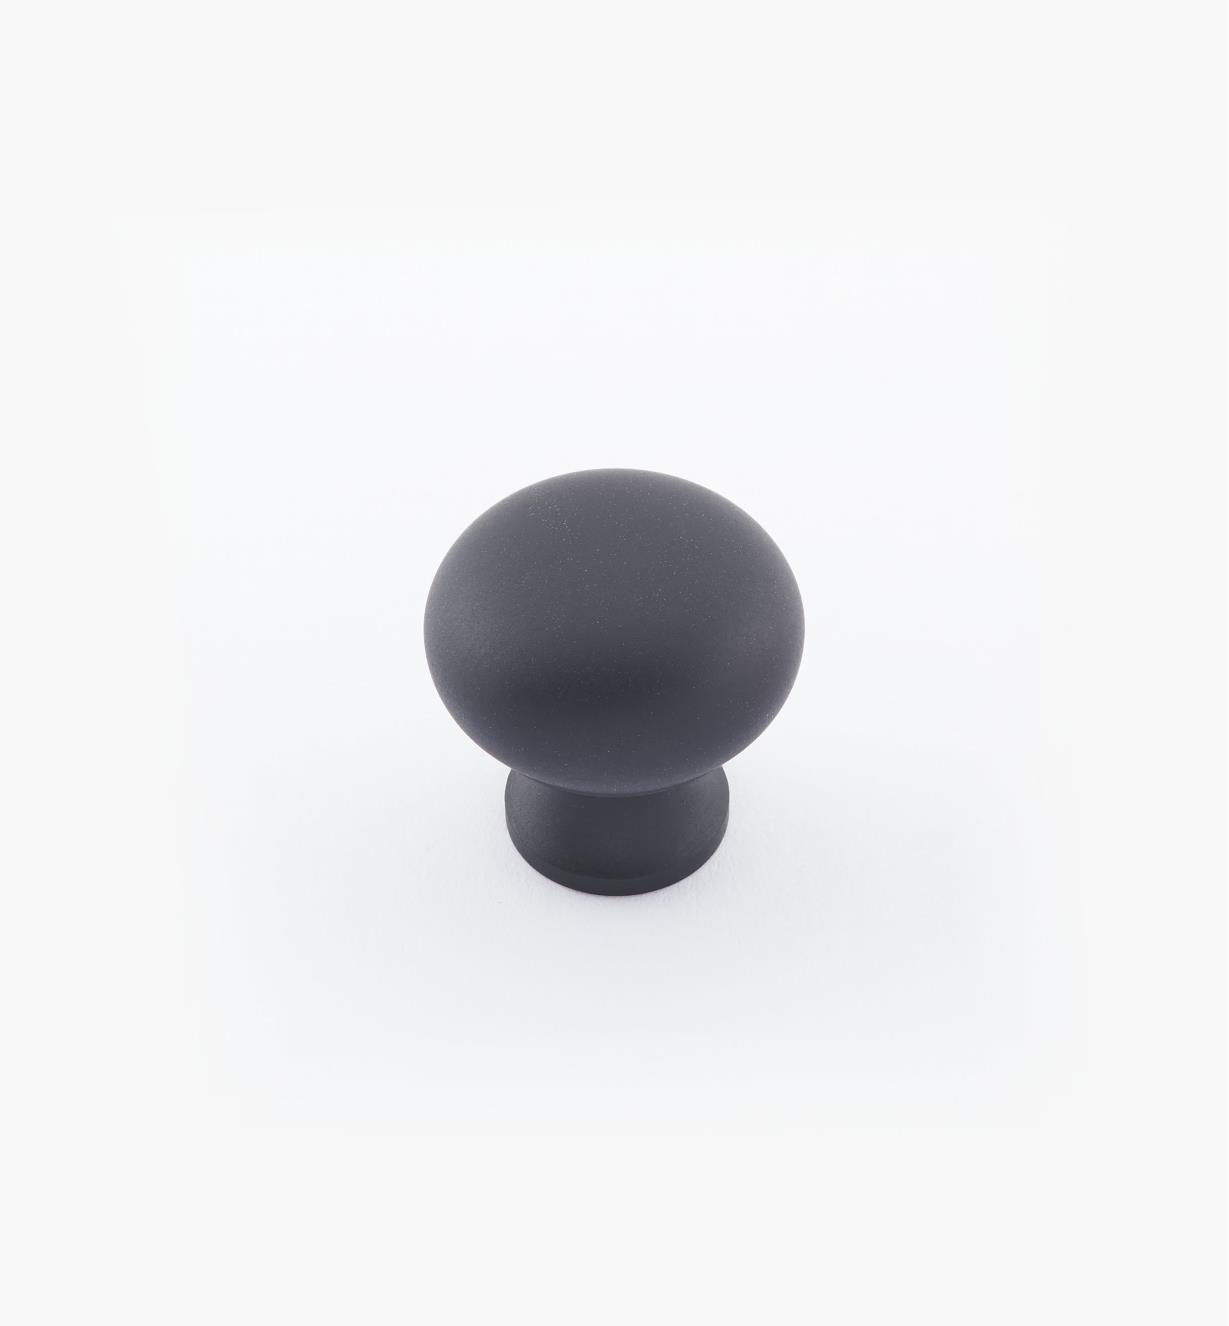 "02W1422 - 3/4"" × 3/4"" Round Brass Knob, Oil-Rubbed Bronze"